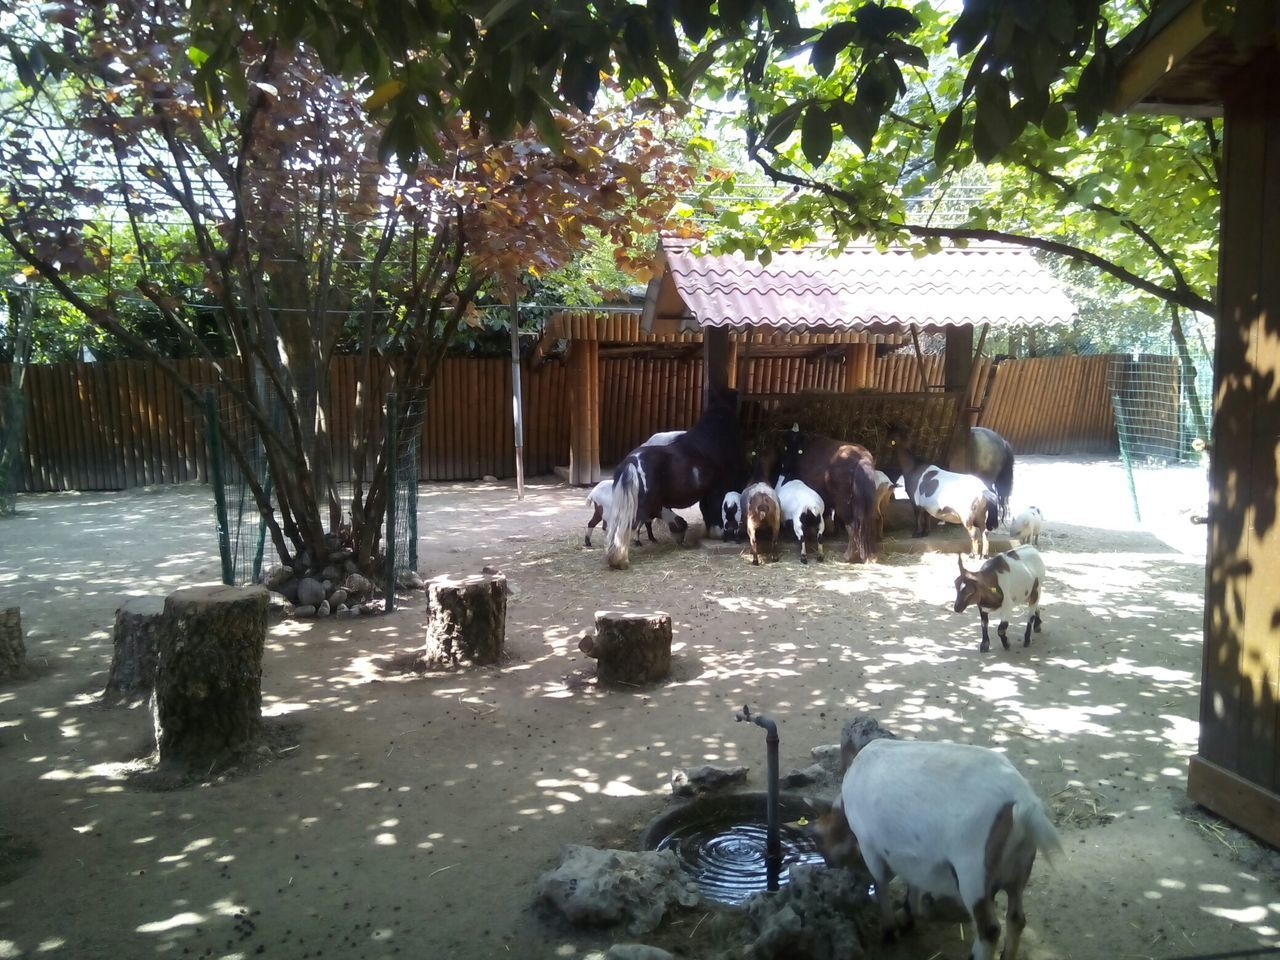 animal themes, tree, mammal, domestic animals, day, nature, outdoors, large group of animals, livestock, no people, togetherness, water